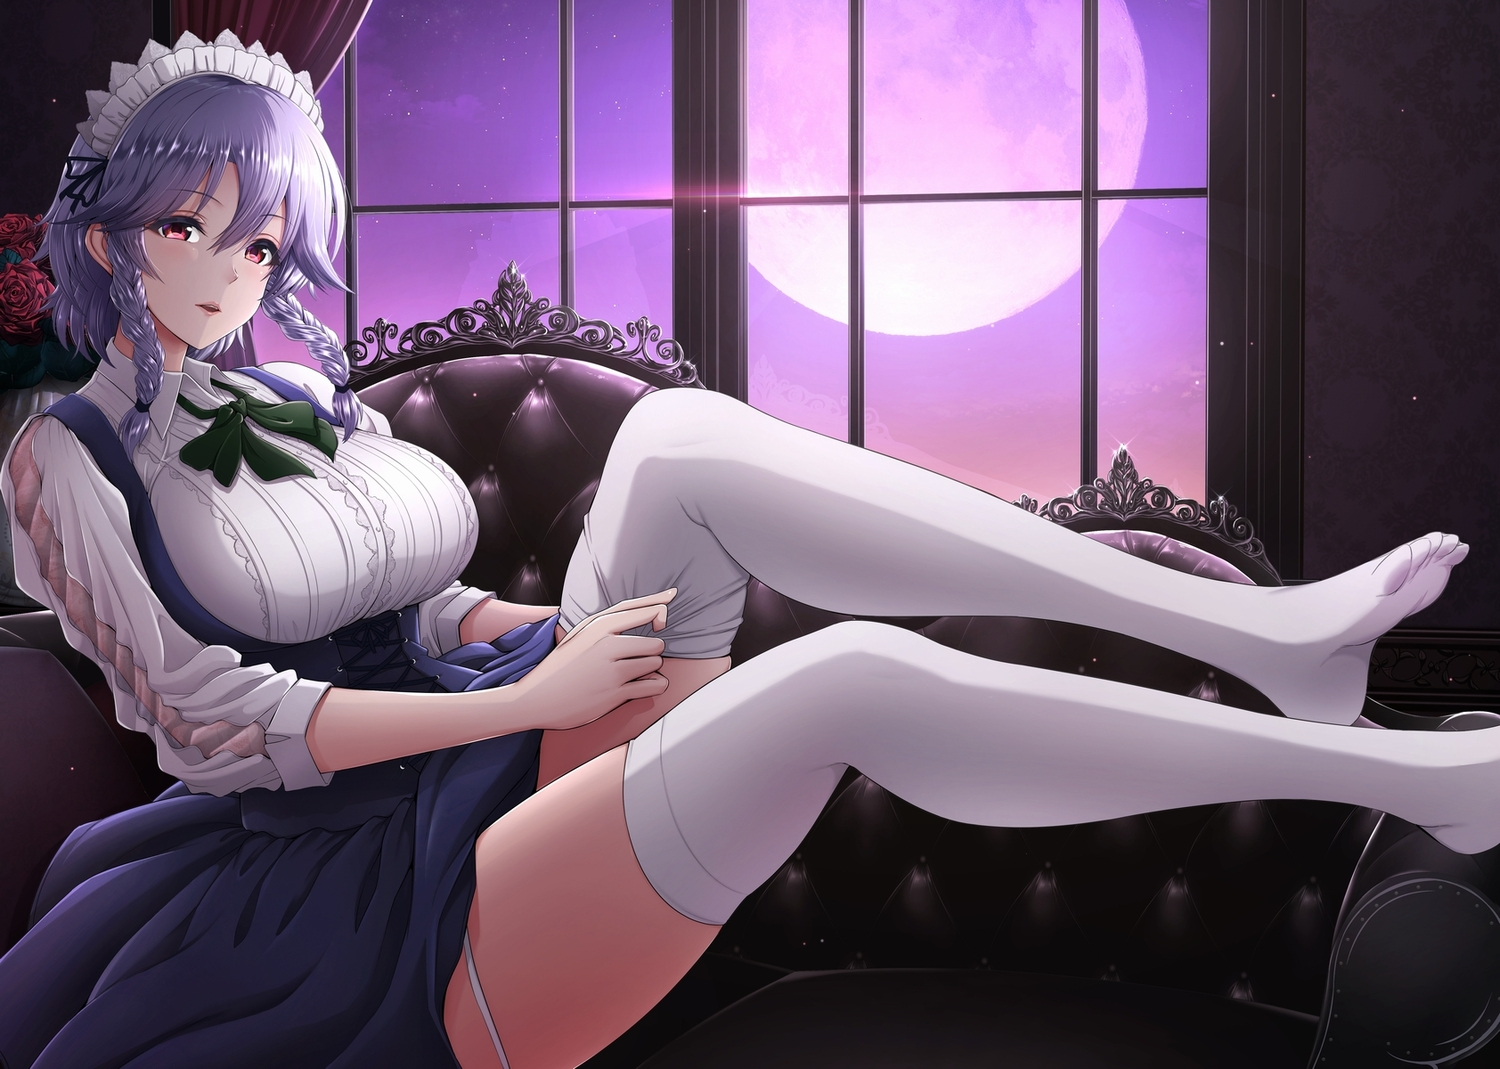 braids corset gray_hair izayoi_sakuya maid moon night red_eyes see_through shirt sky stockings touhou twintails umasan